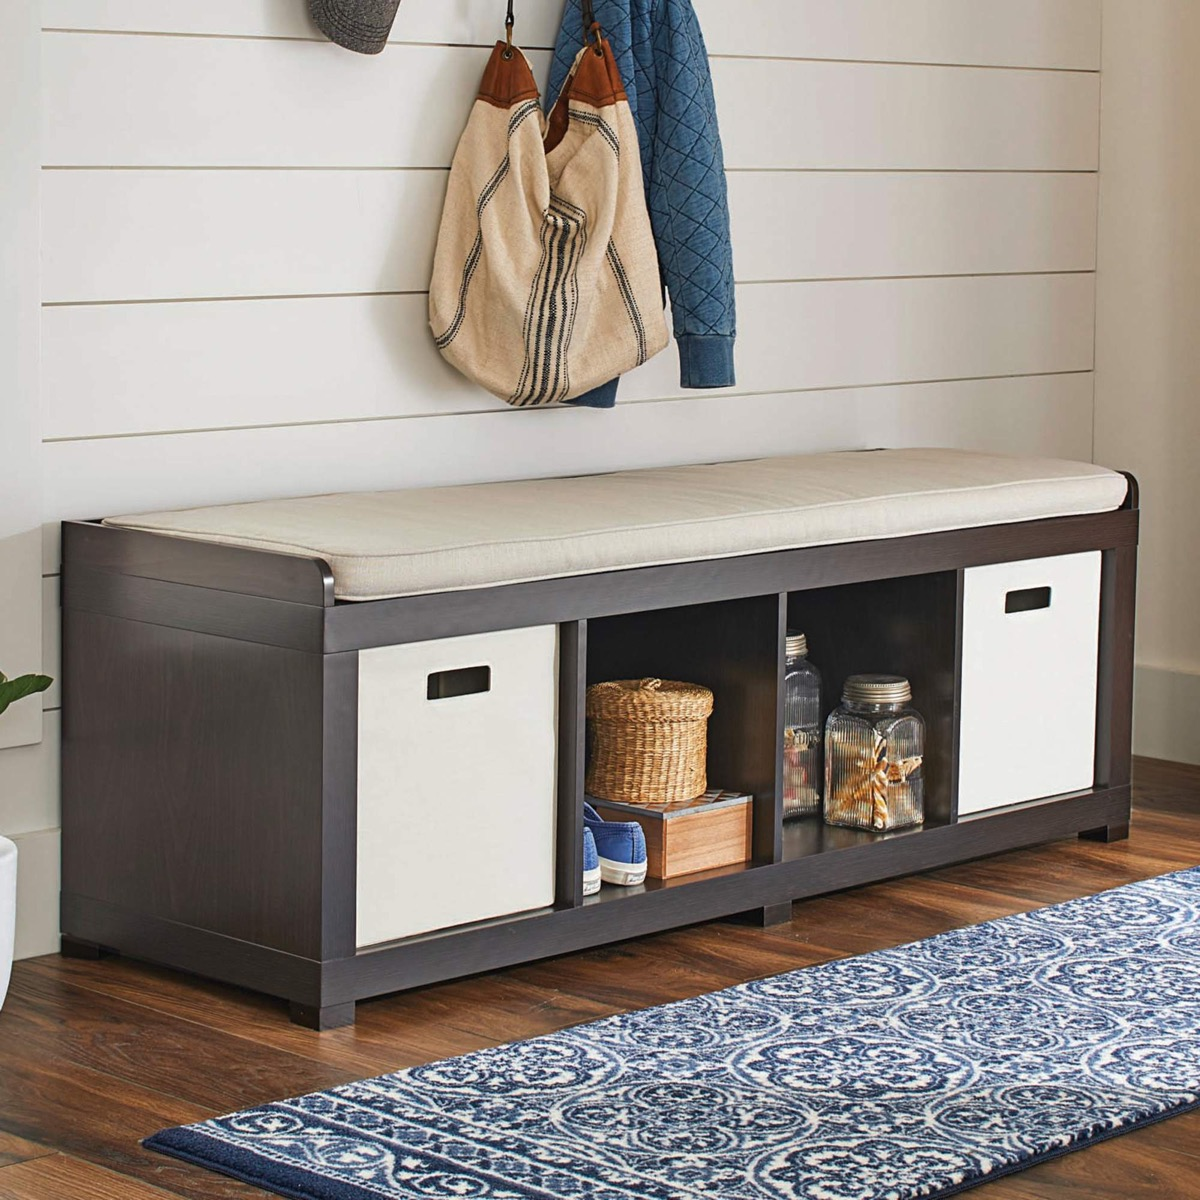 Long-Entryway-Bench-With-Storage-Shelves-Cubbies-And-Removable-Beige-Cushion